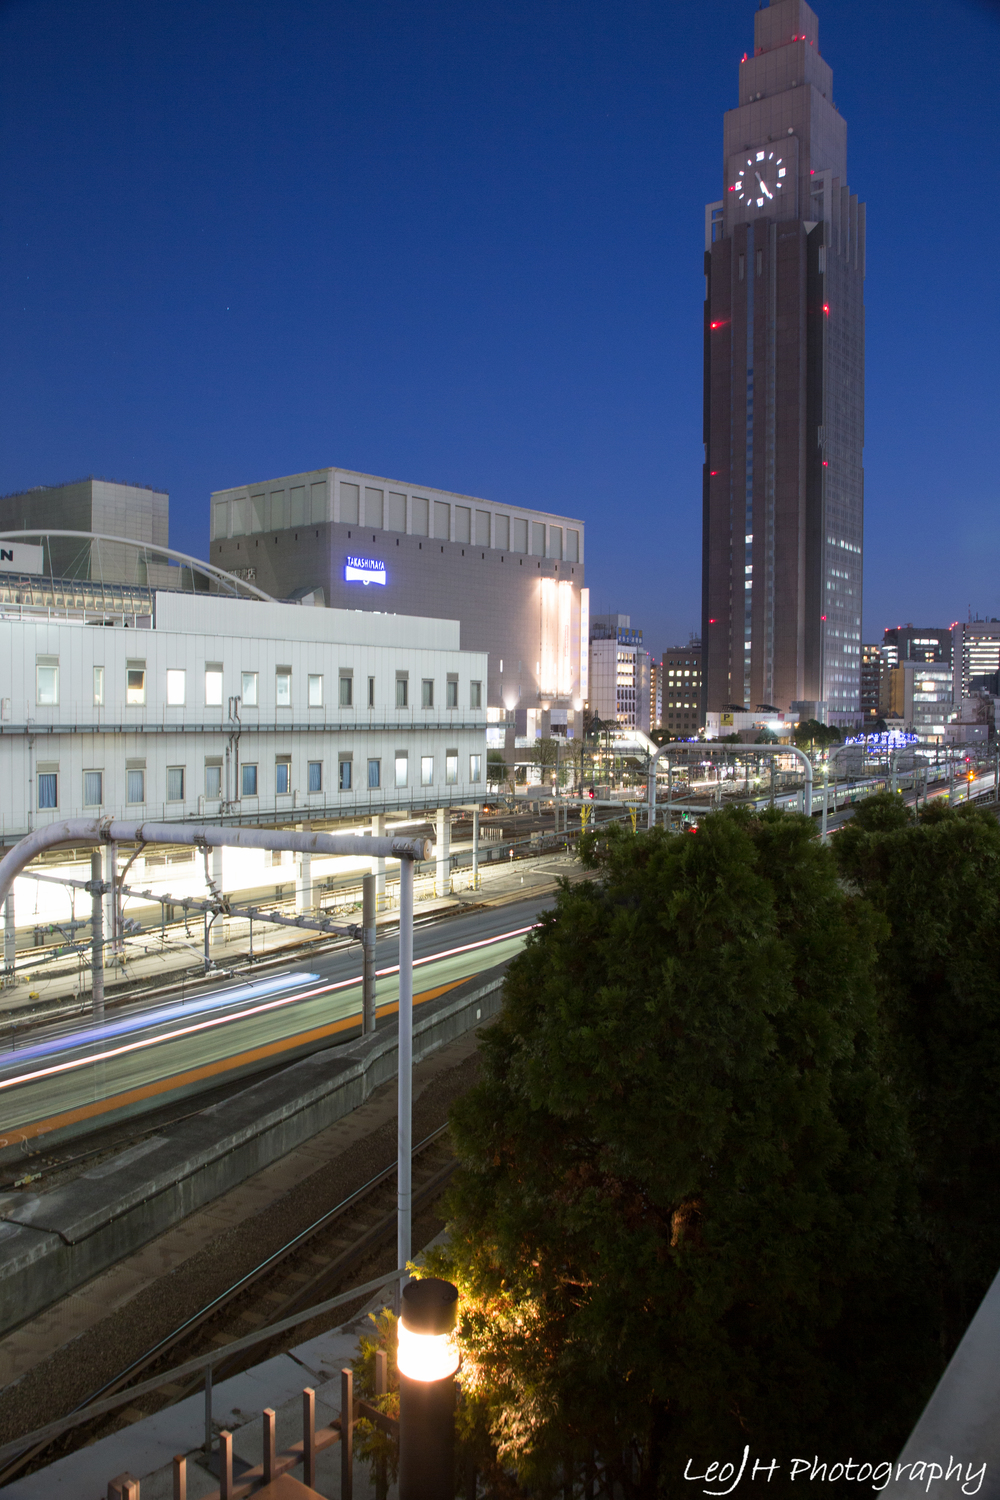 World's busiest train station, Shinjuku. There are even more train tracks than the photo suggests